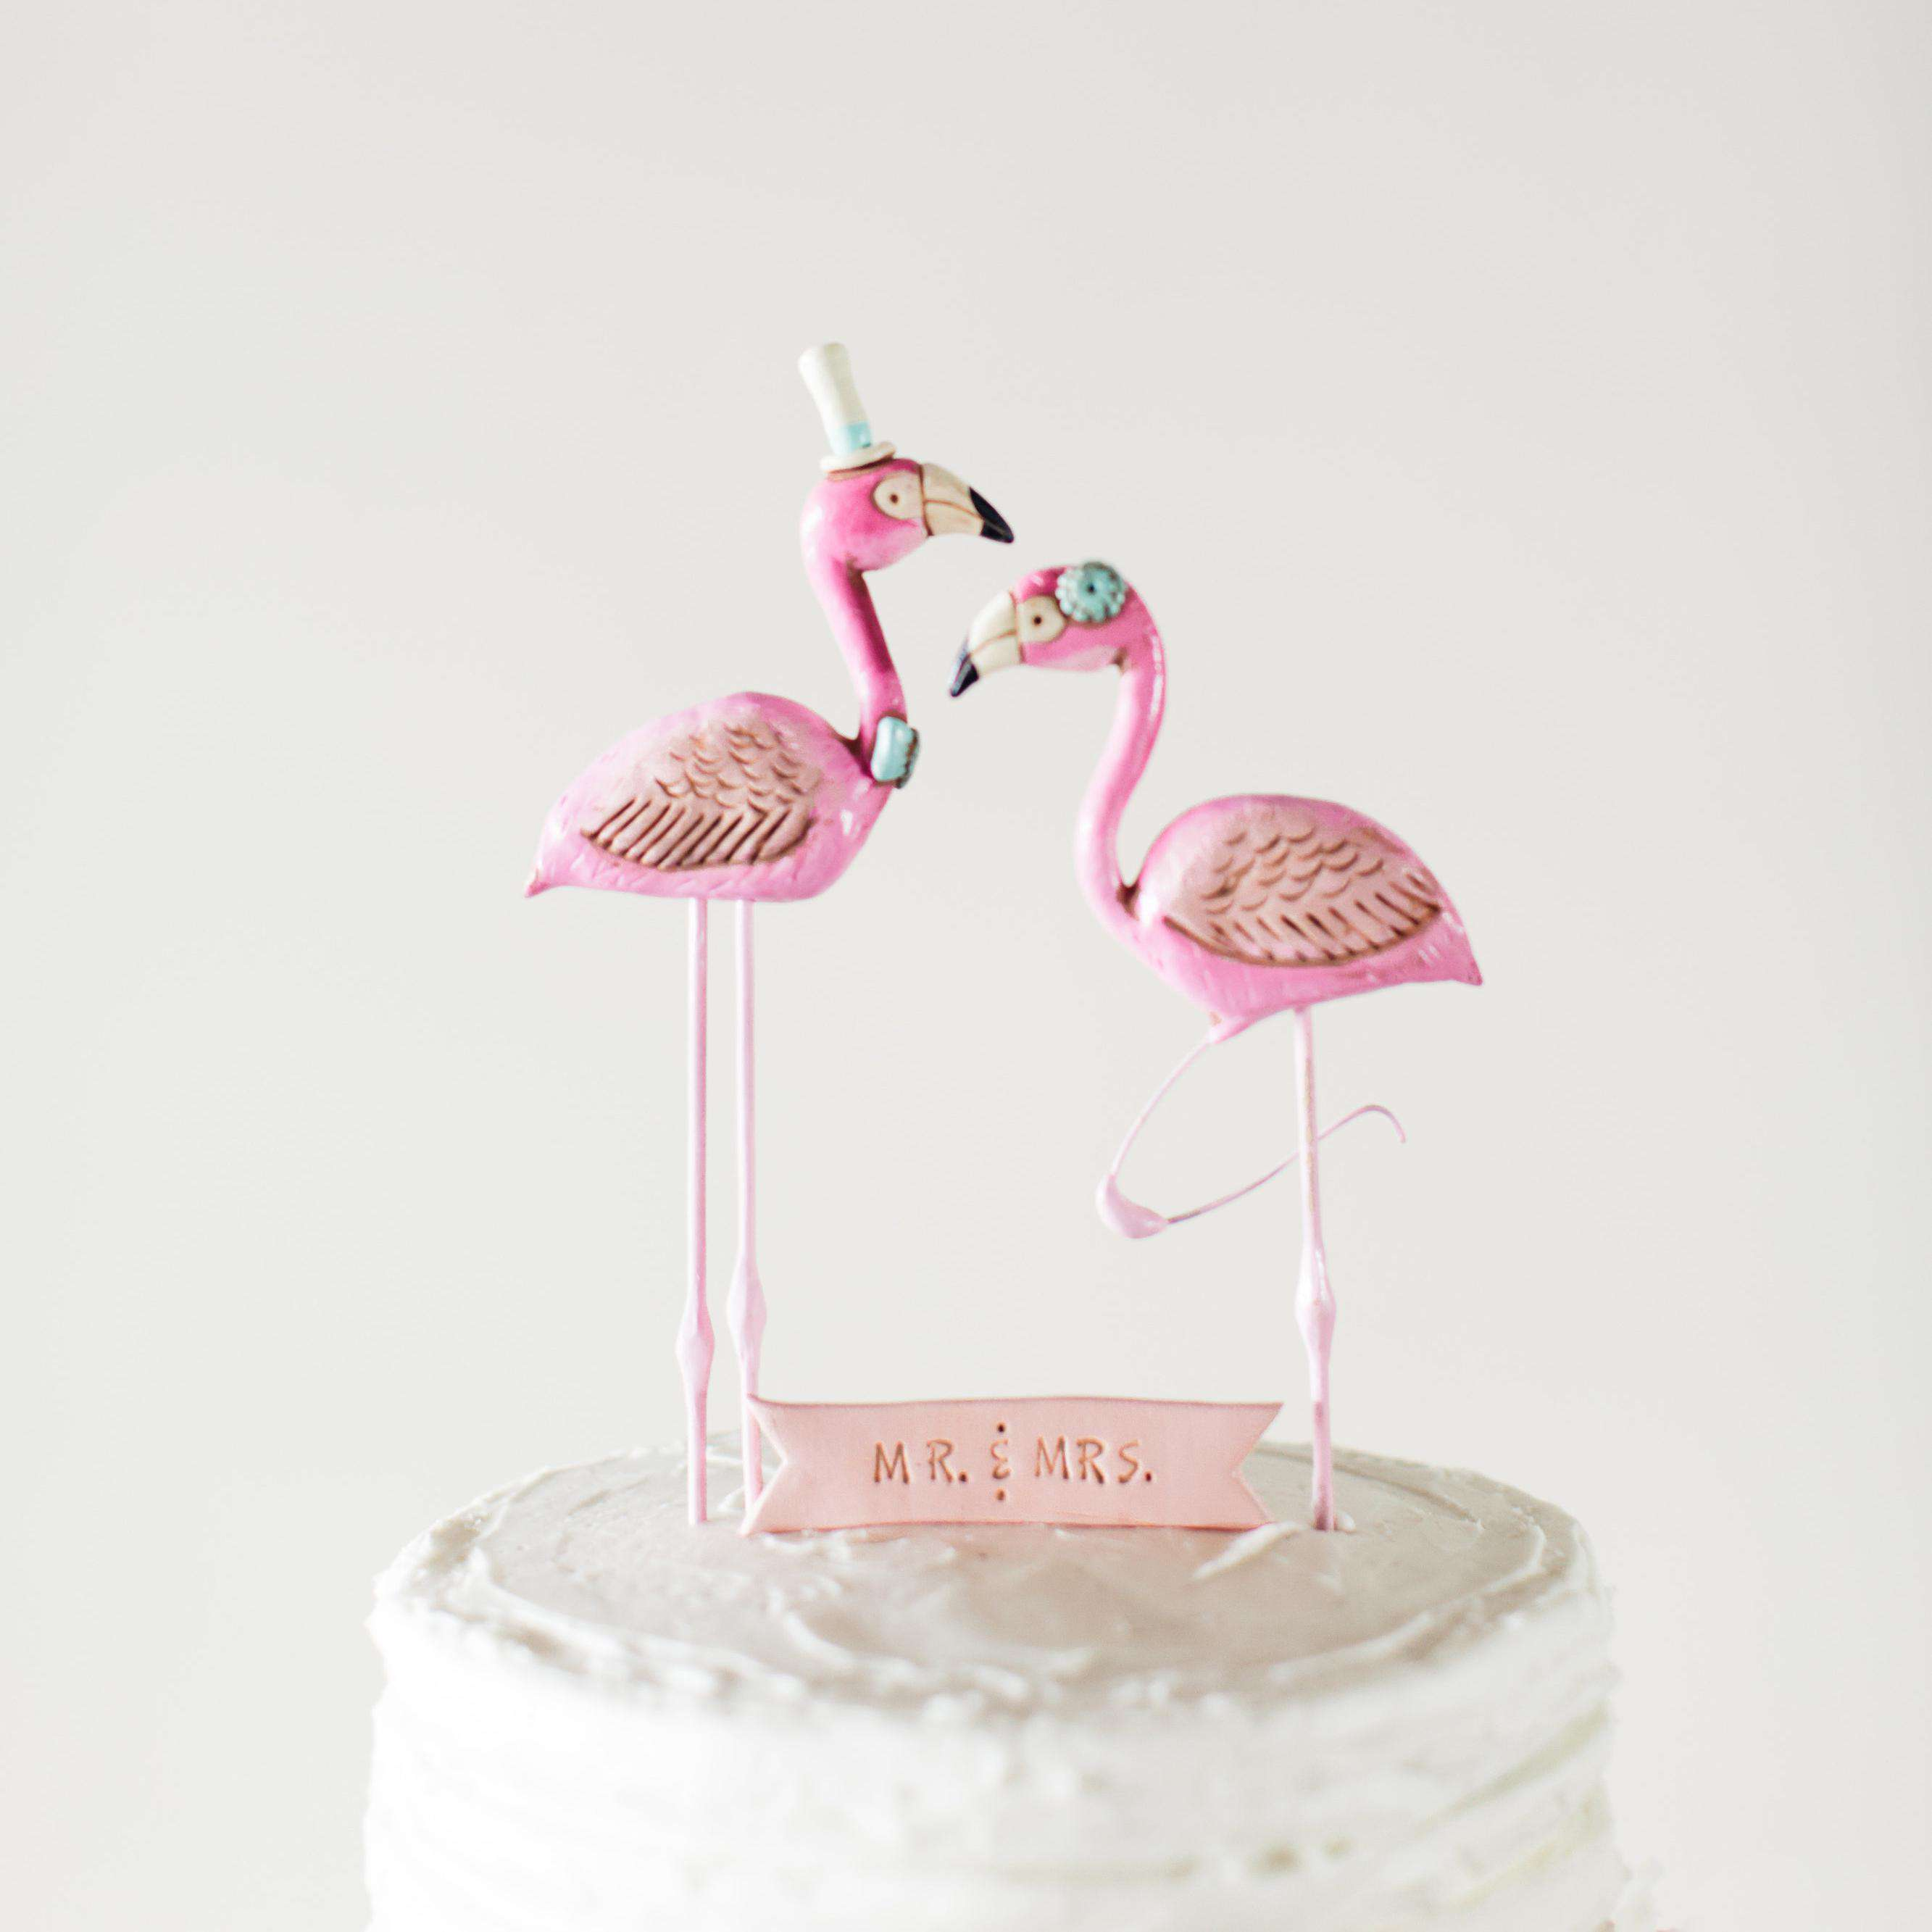 Cutest Wedding Cake Toppers.23 Unique Wedding Cake Toppers